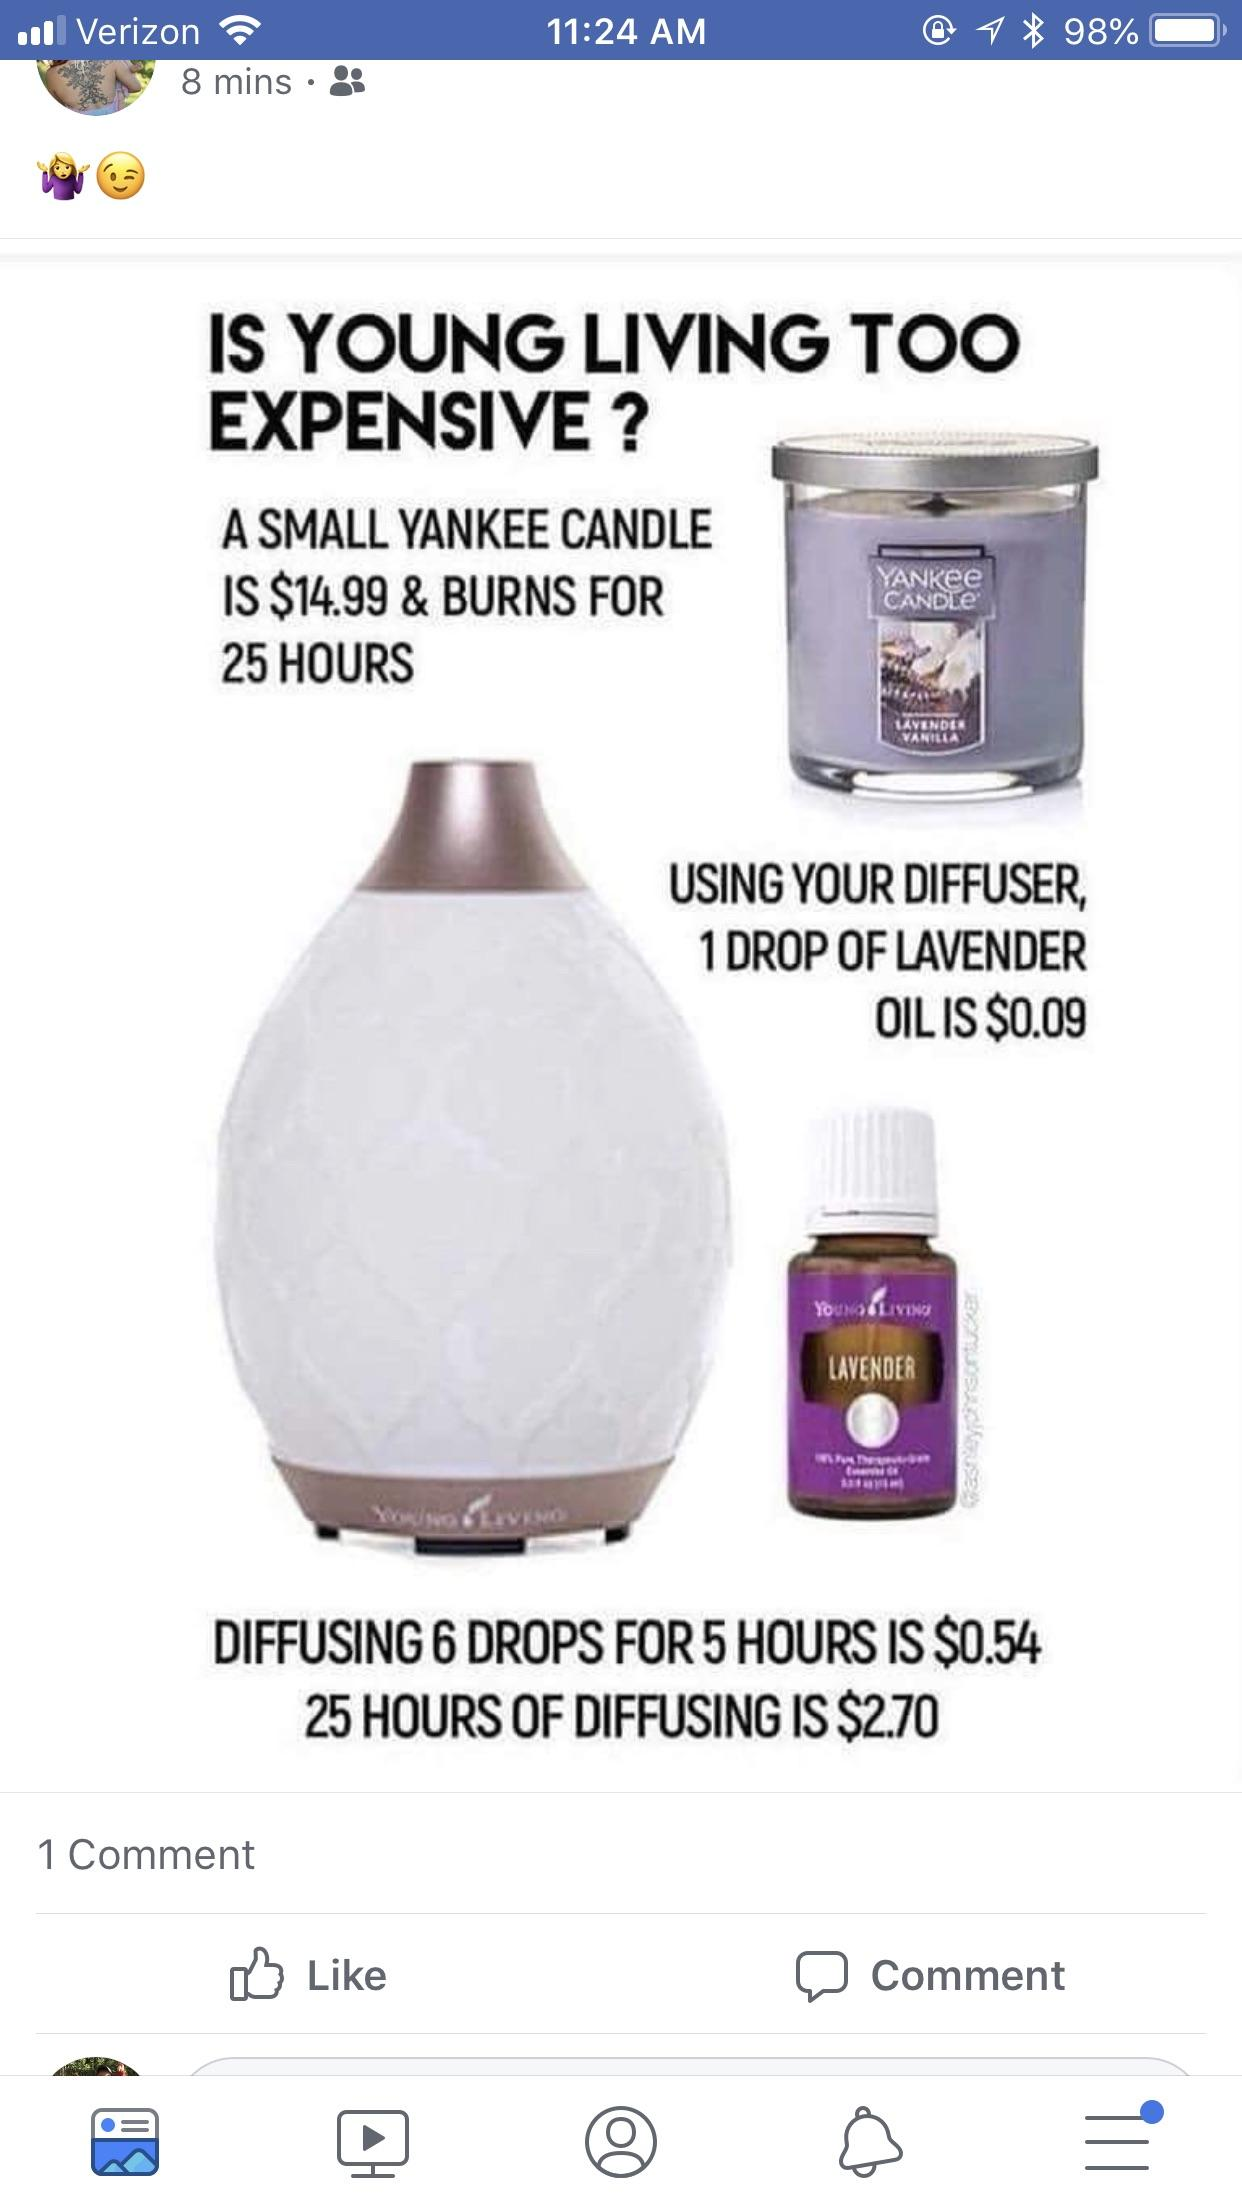 Candle Making Kit Kmart 2 70 An 83 88 Diffuser Think I Ll Take The Candle There